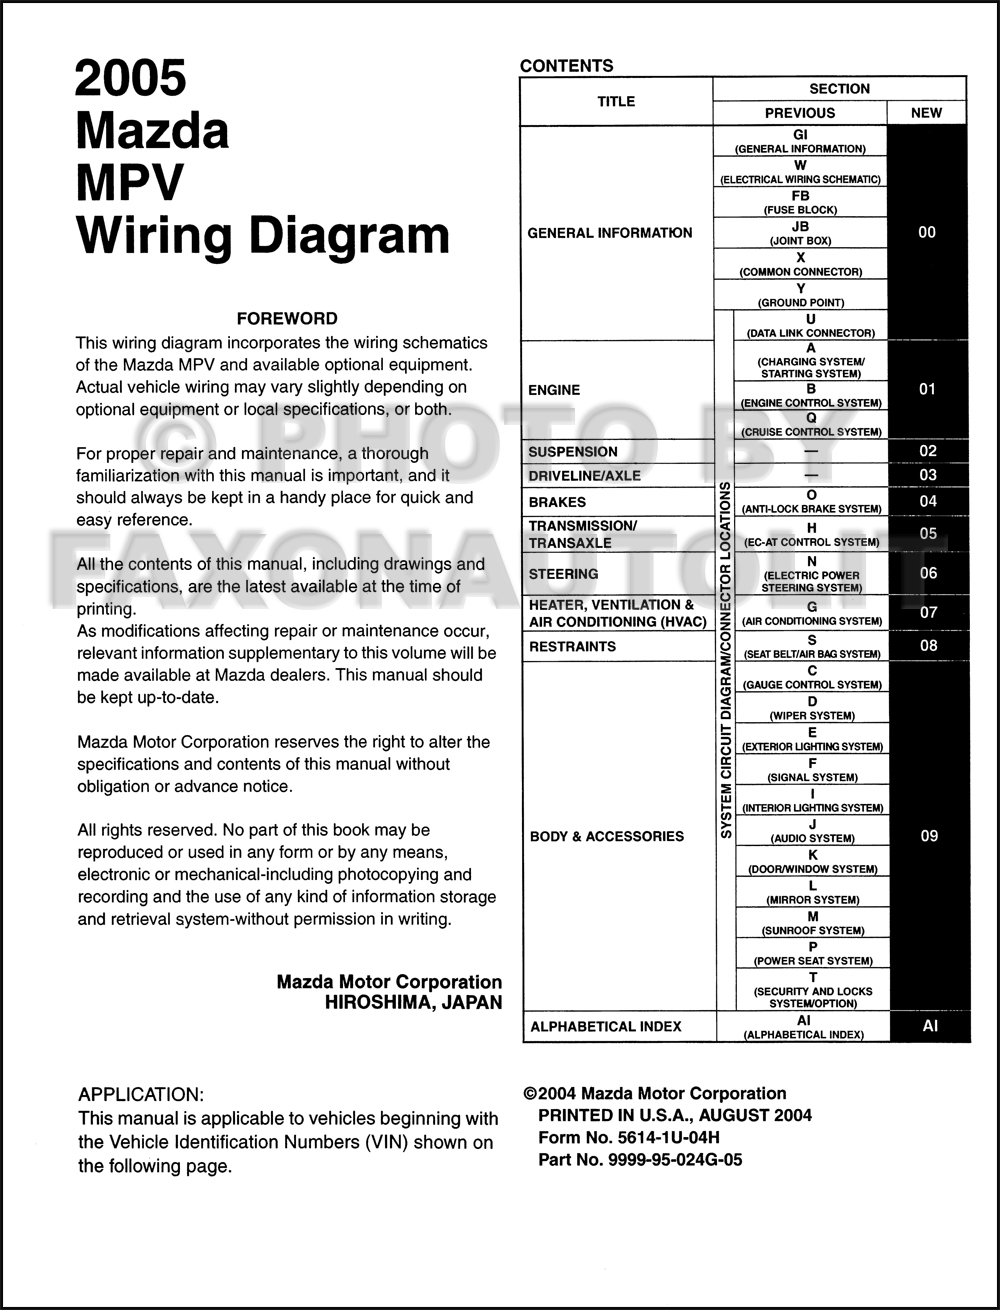 mazda mpv wiring experts of wiring diagram u2022 rh evilcloud co uk 2006 mazda mpv fuse box diagram 2006 mazda mpv fuse box